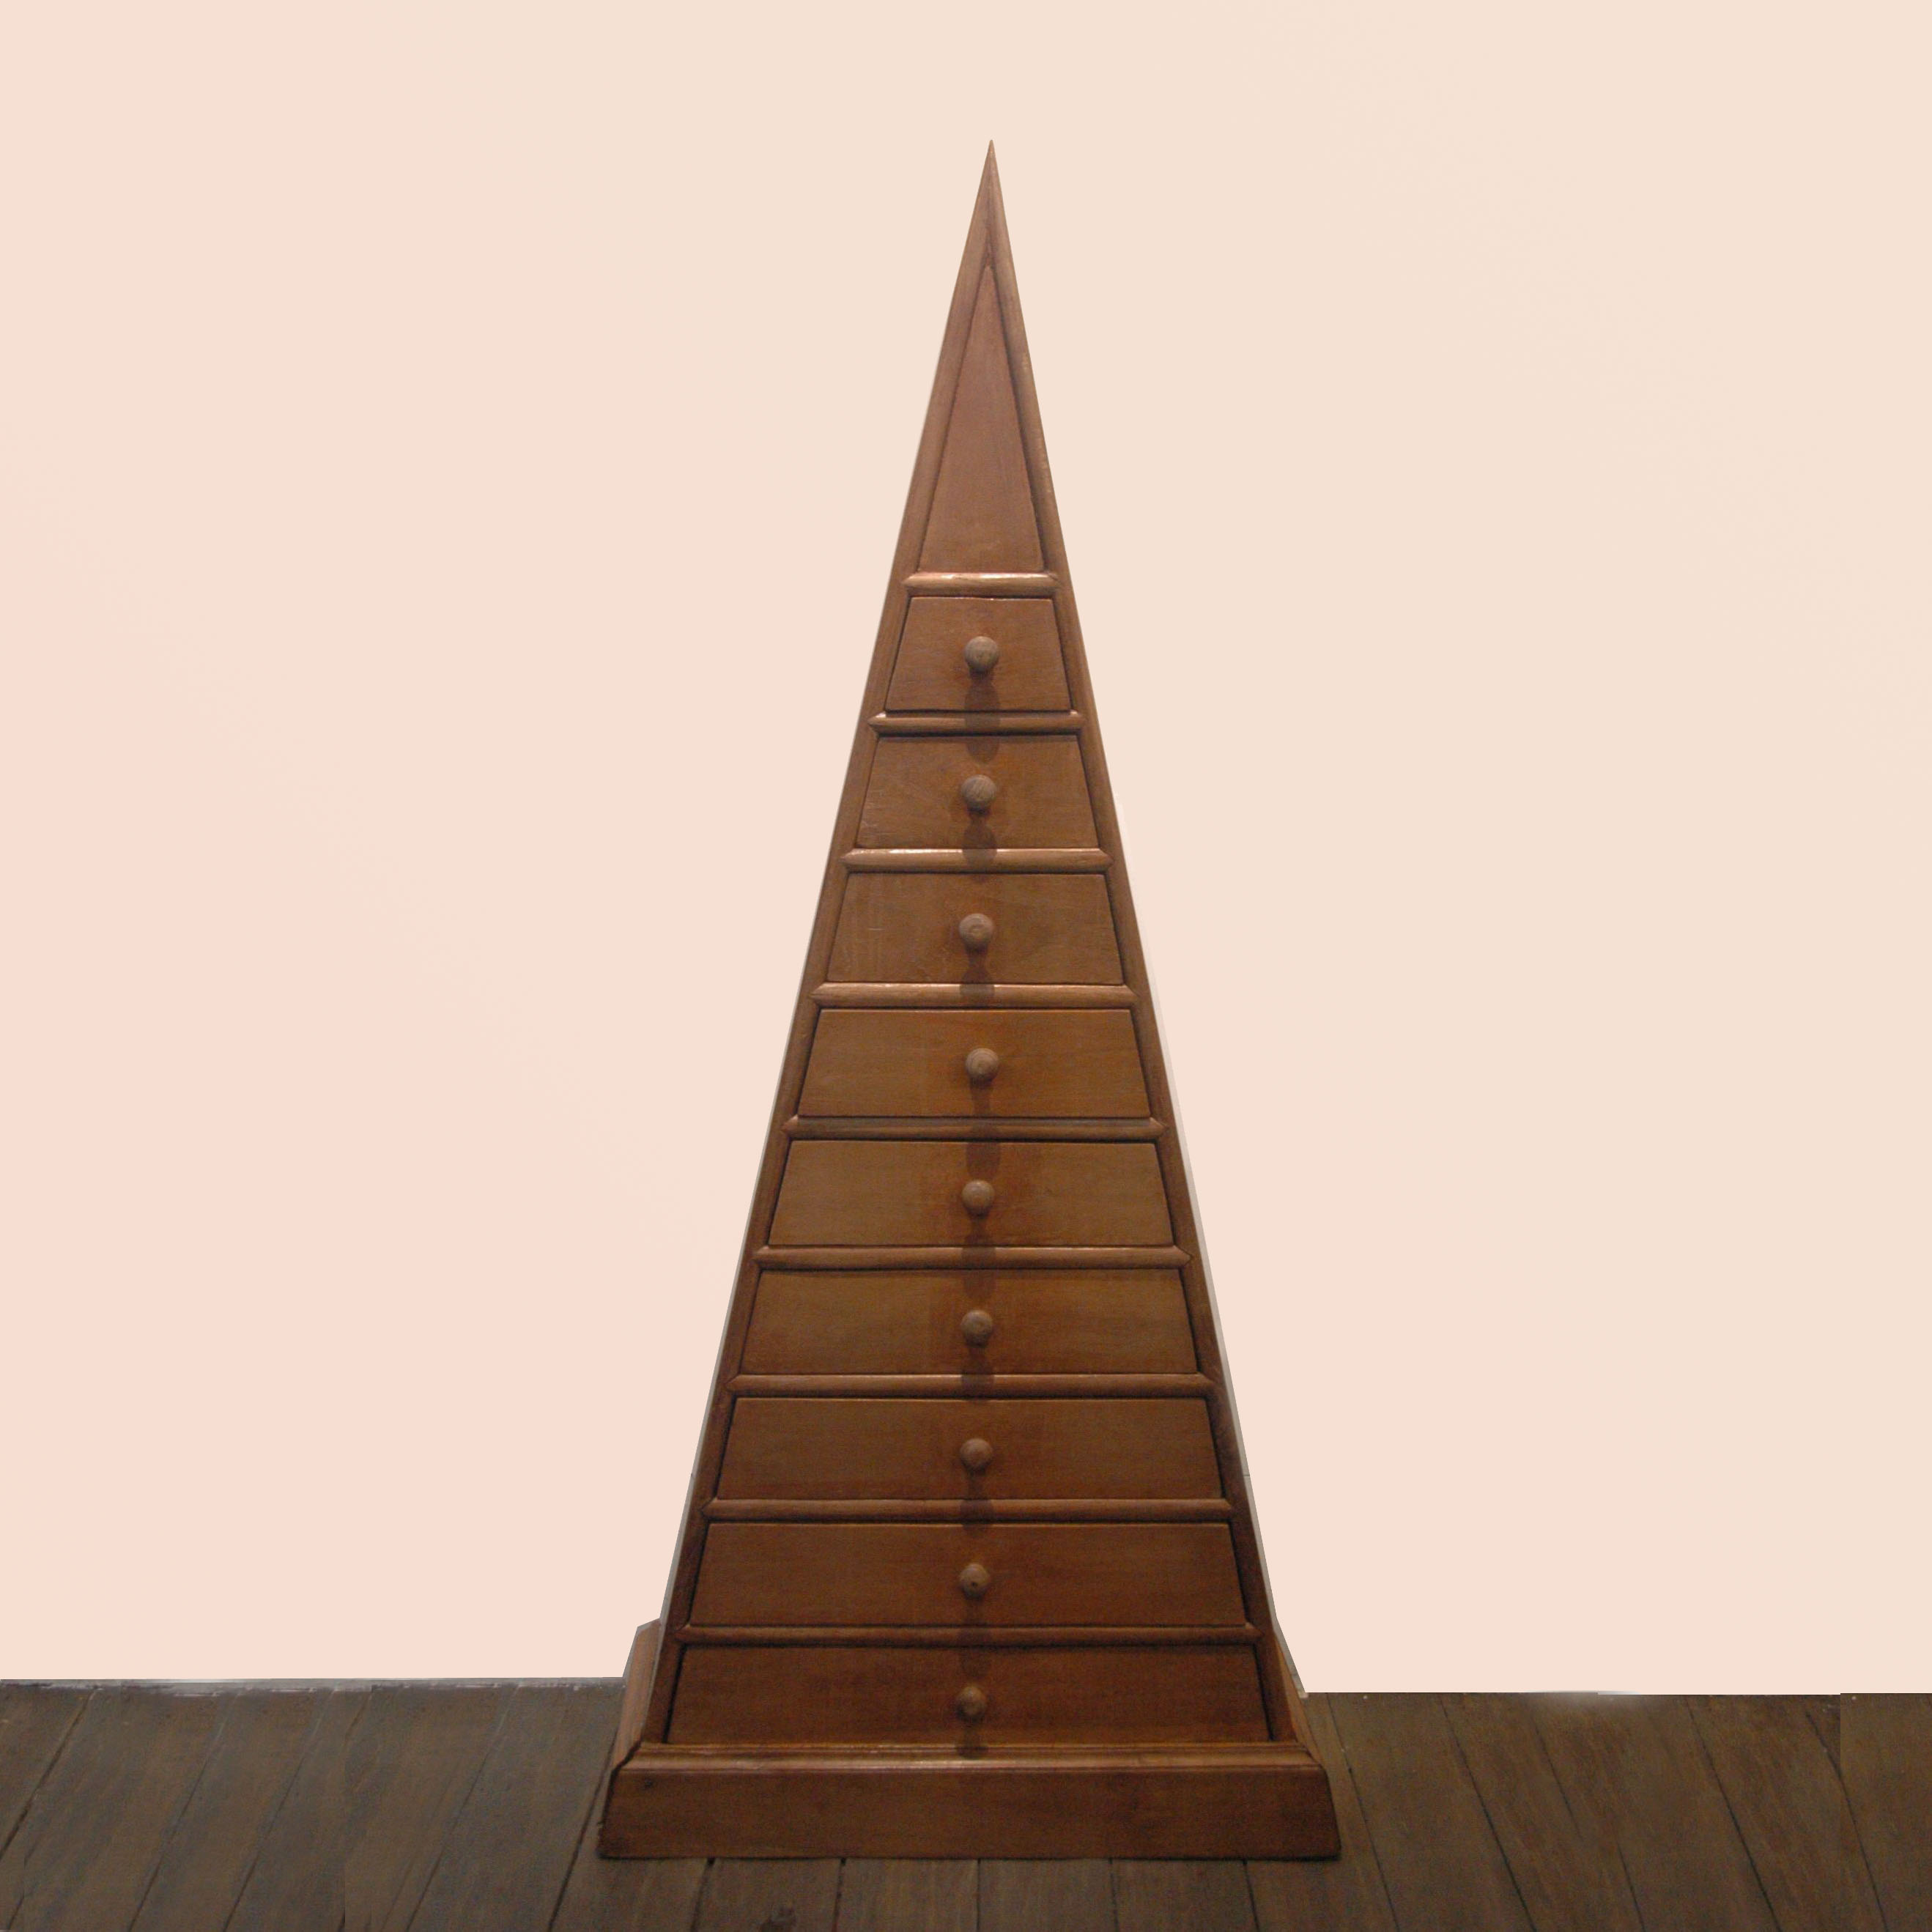 Triangular Chest Of Drawers